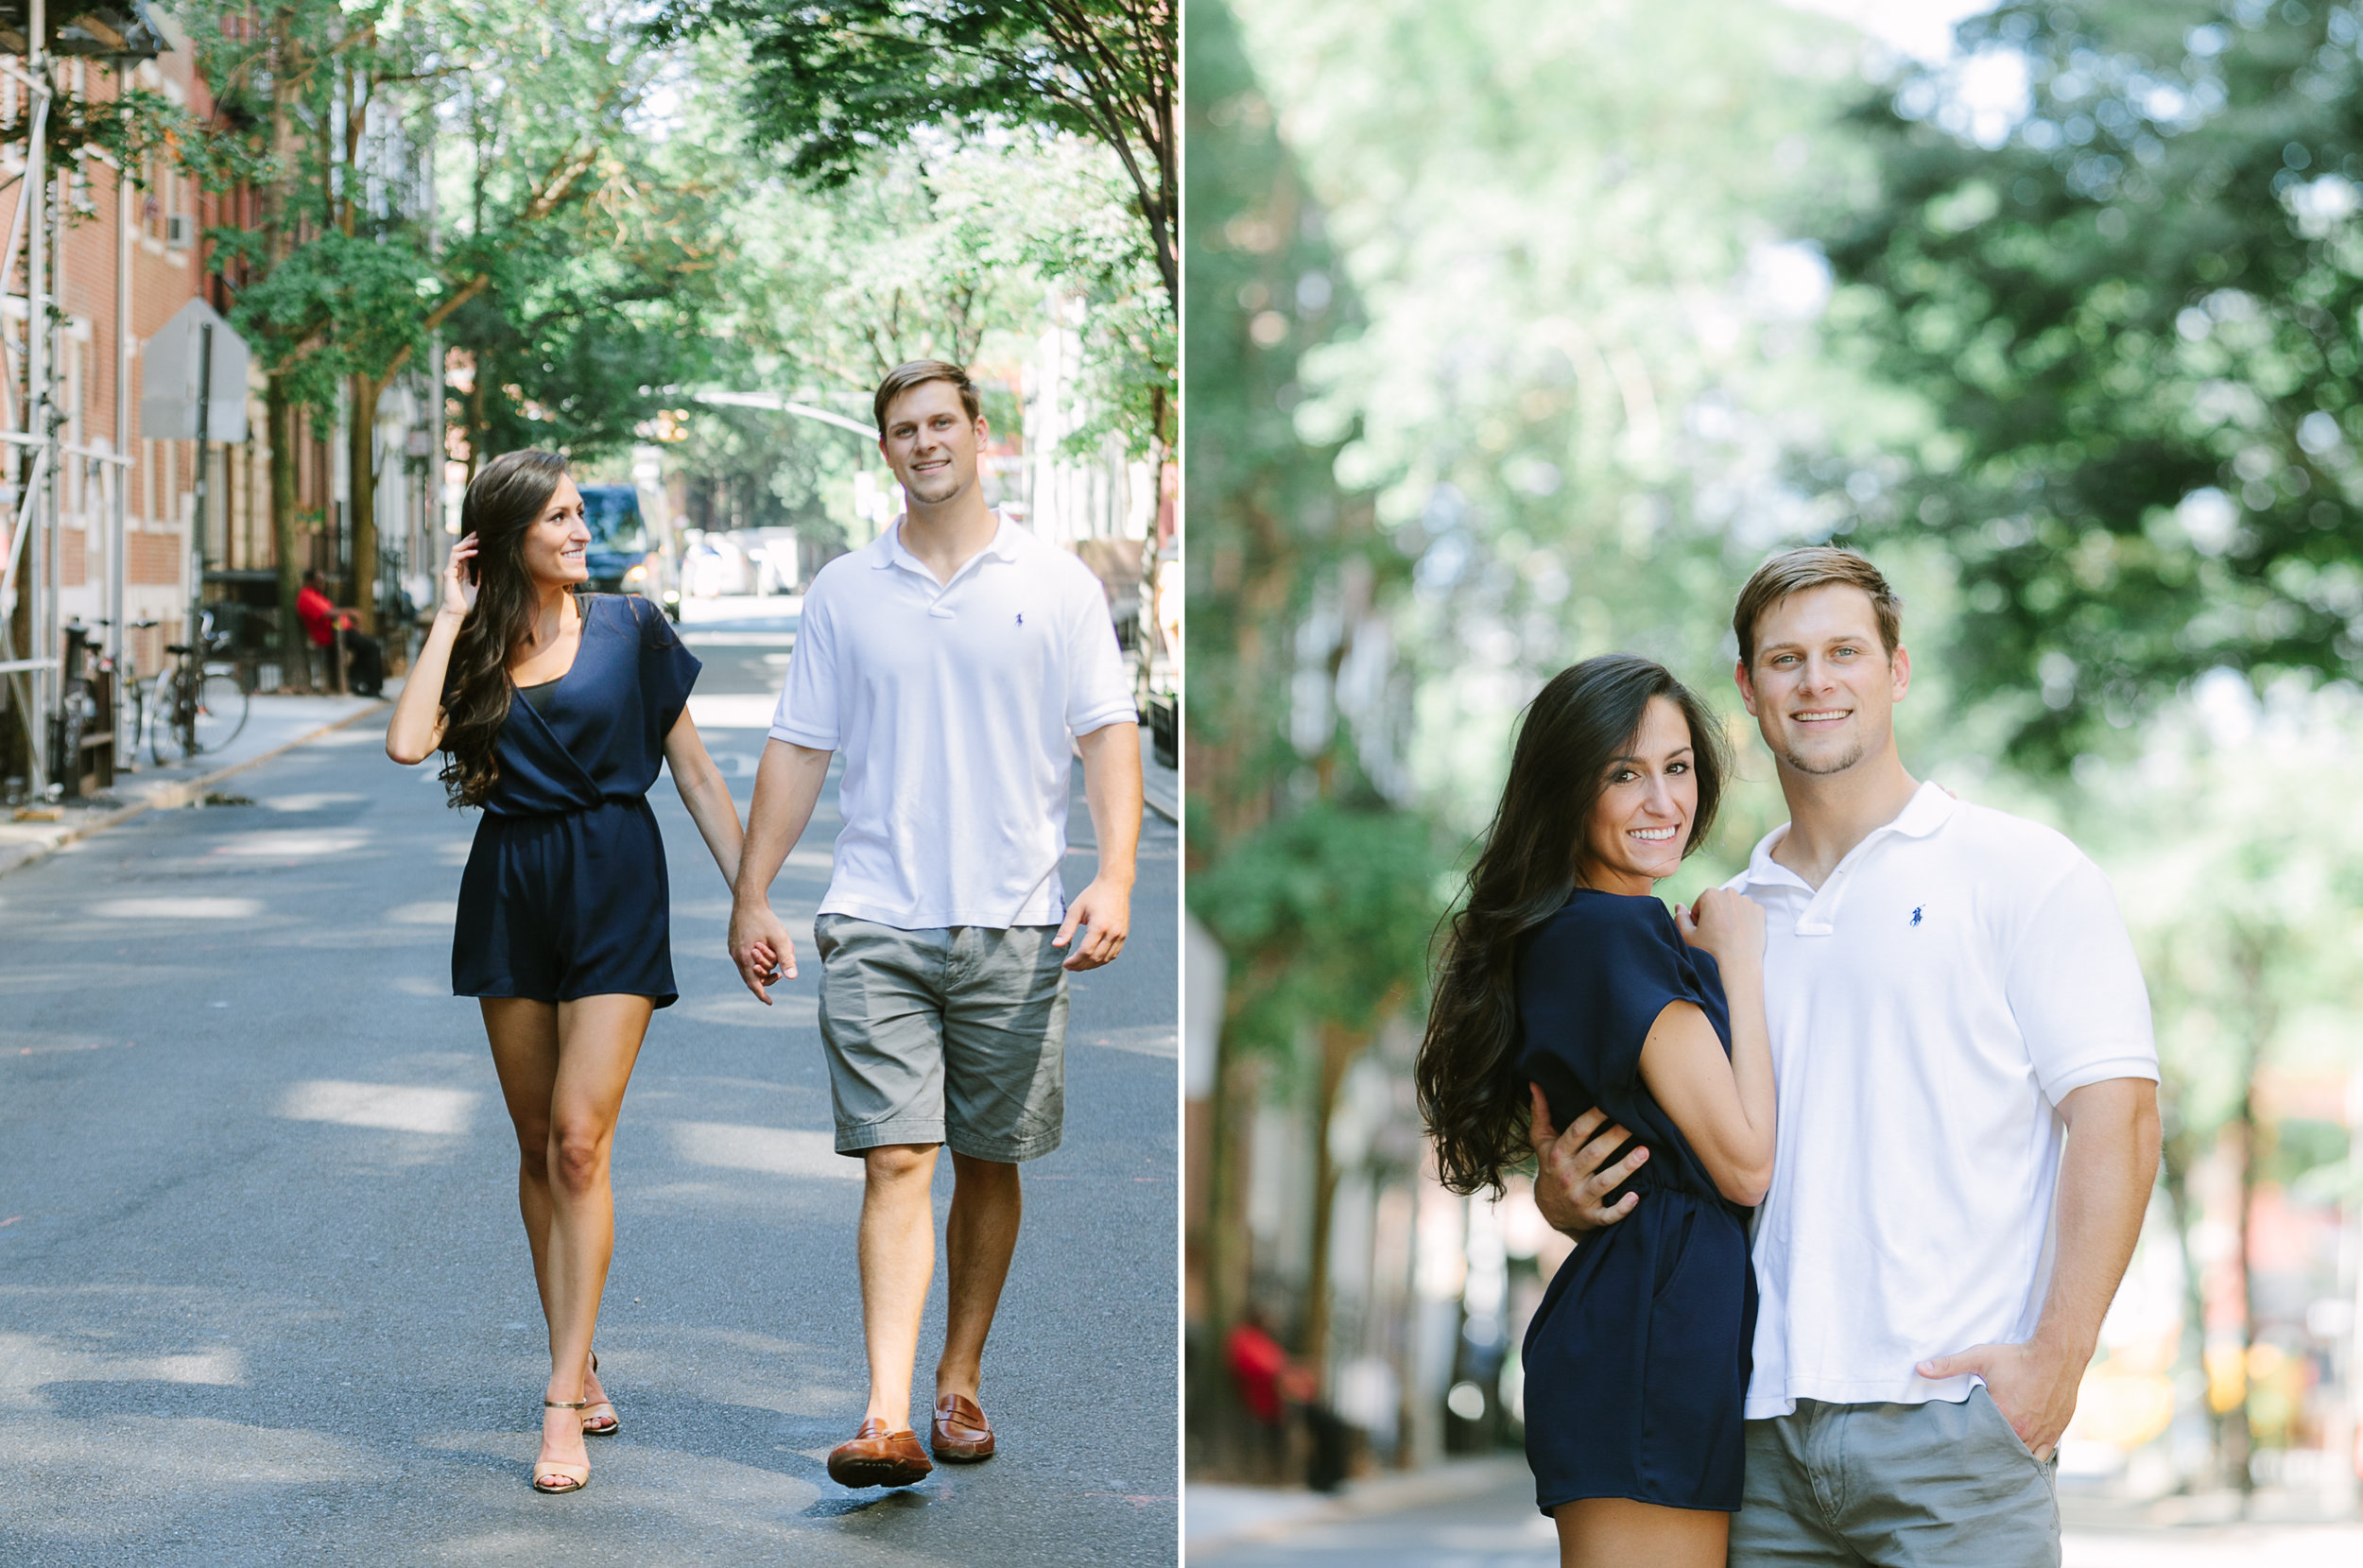 NYC-West Village-engagement session_13.jpg